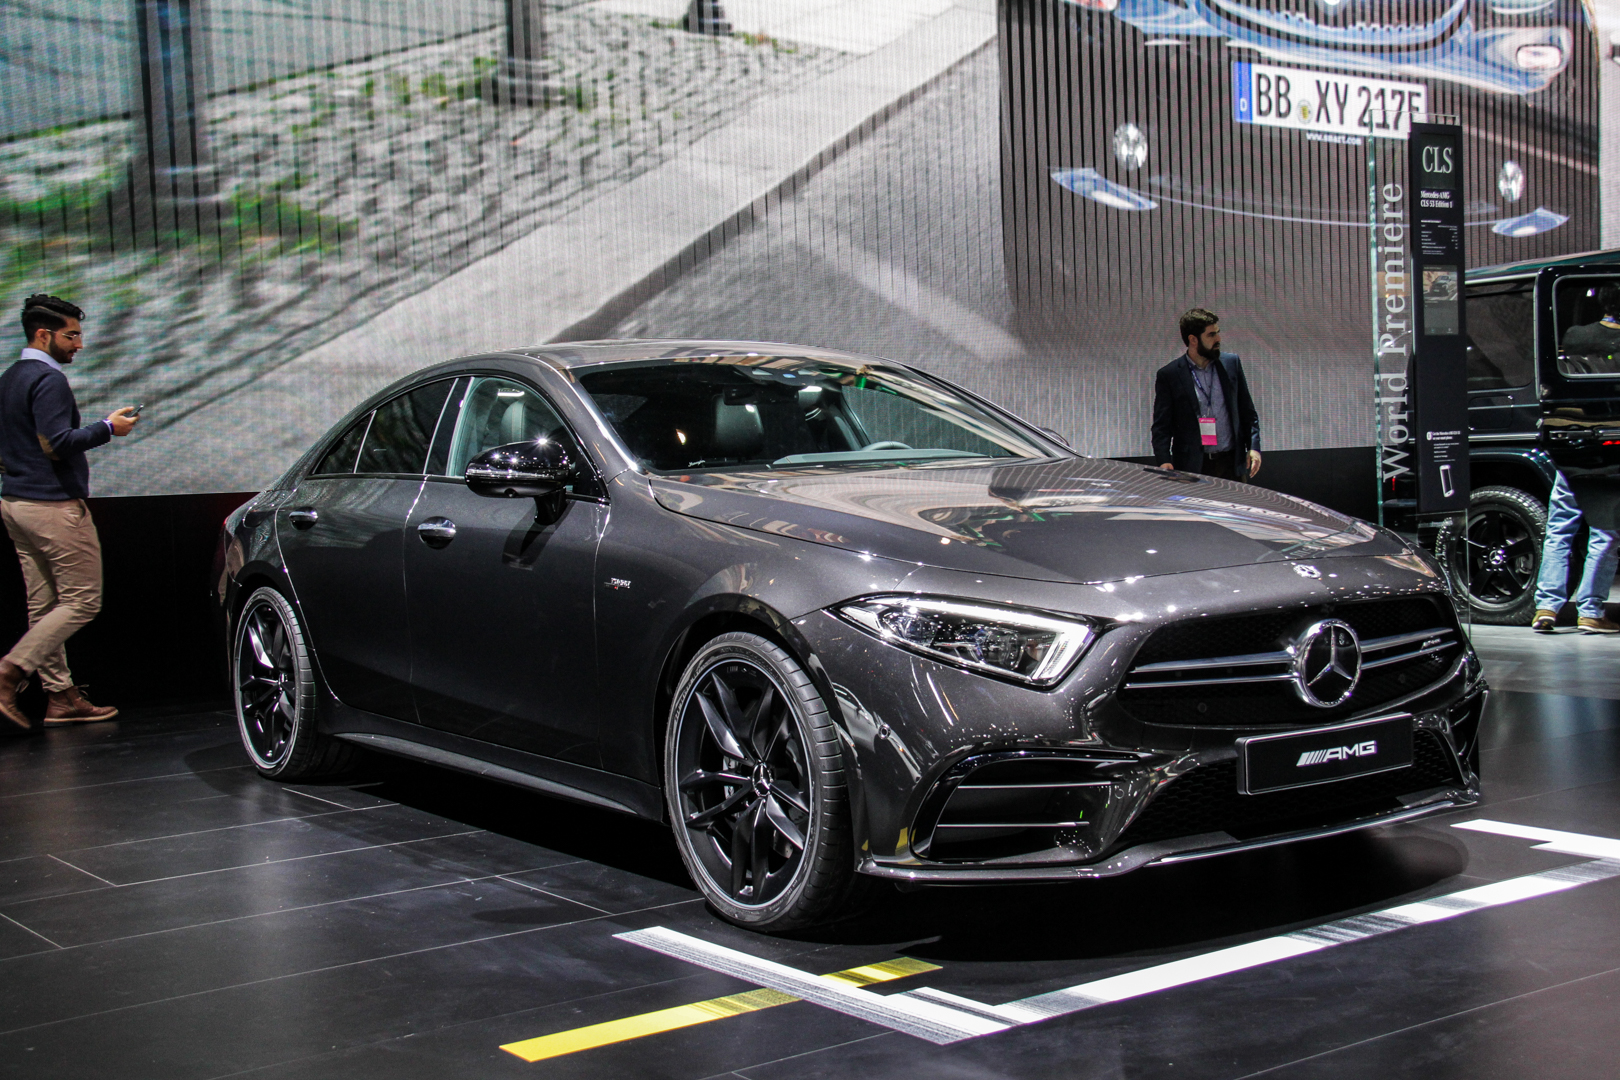 2018 Ford Mustang 0 60 >> 2018 Detroit Auto Show: Mercedes-AMG CLS53